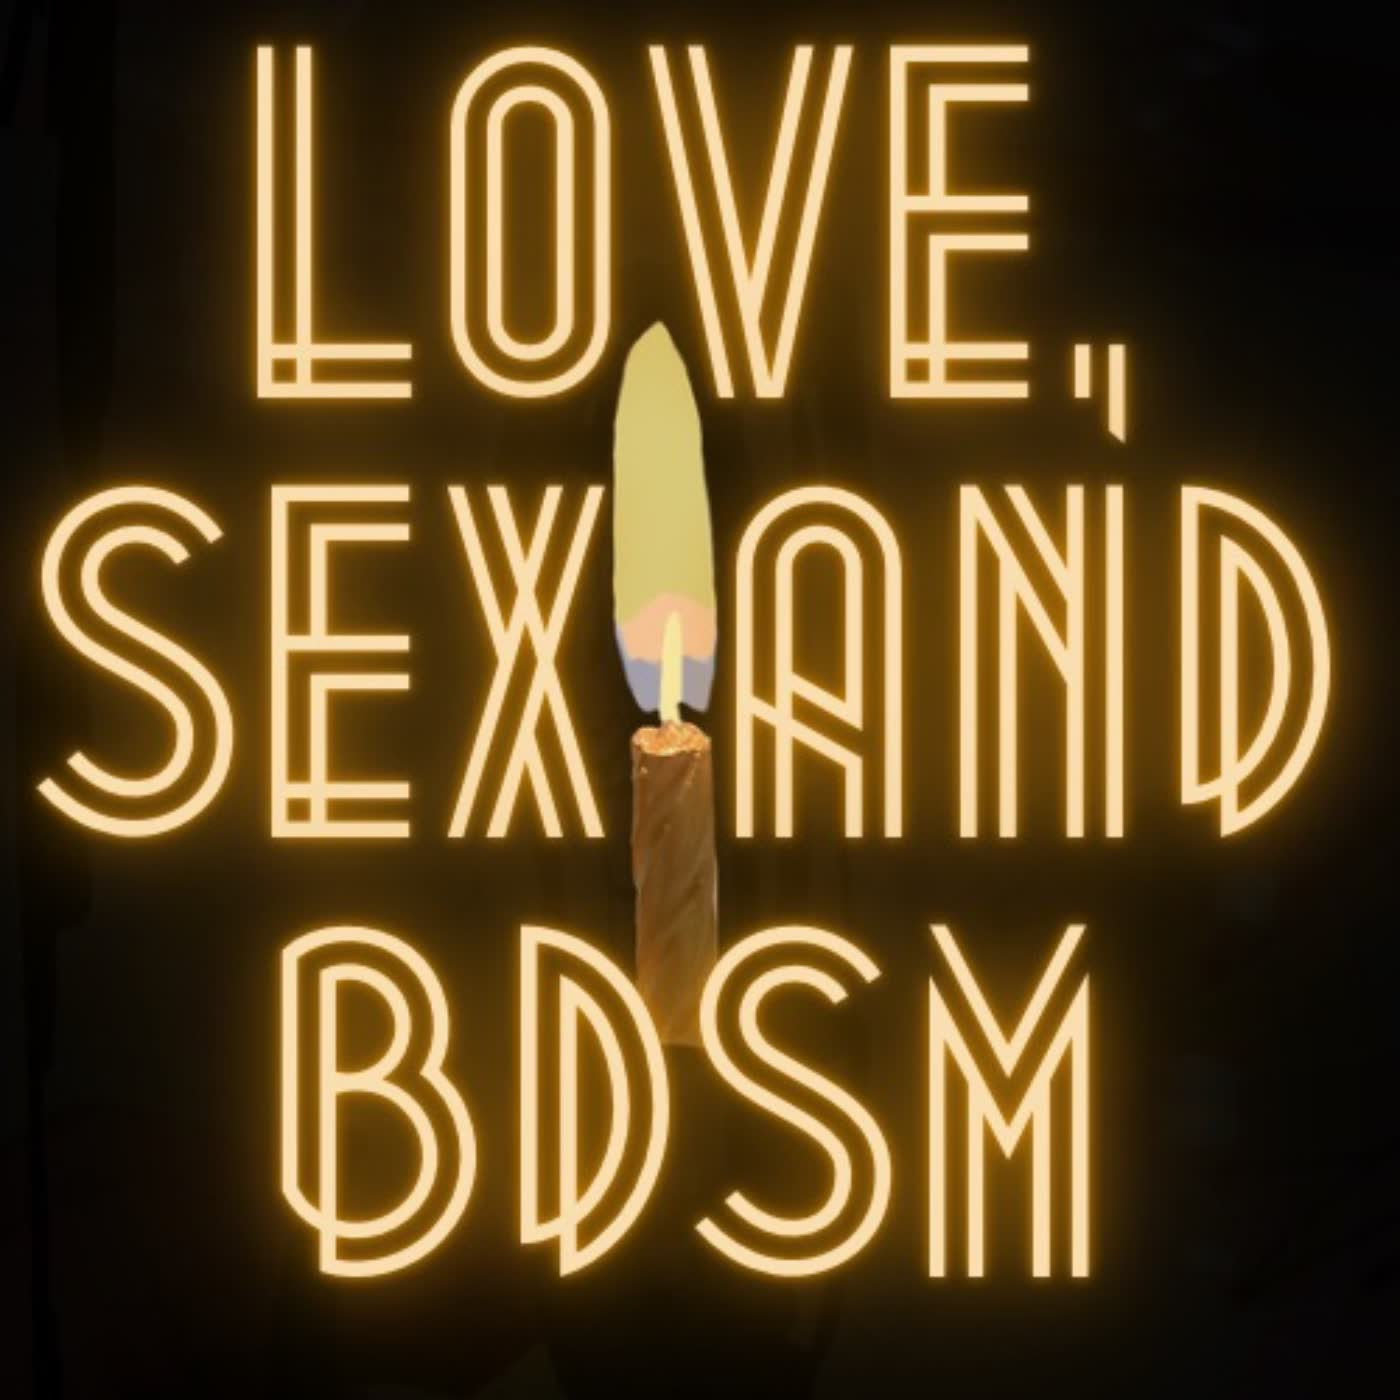 Love, sex and BDSM